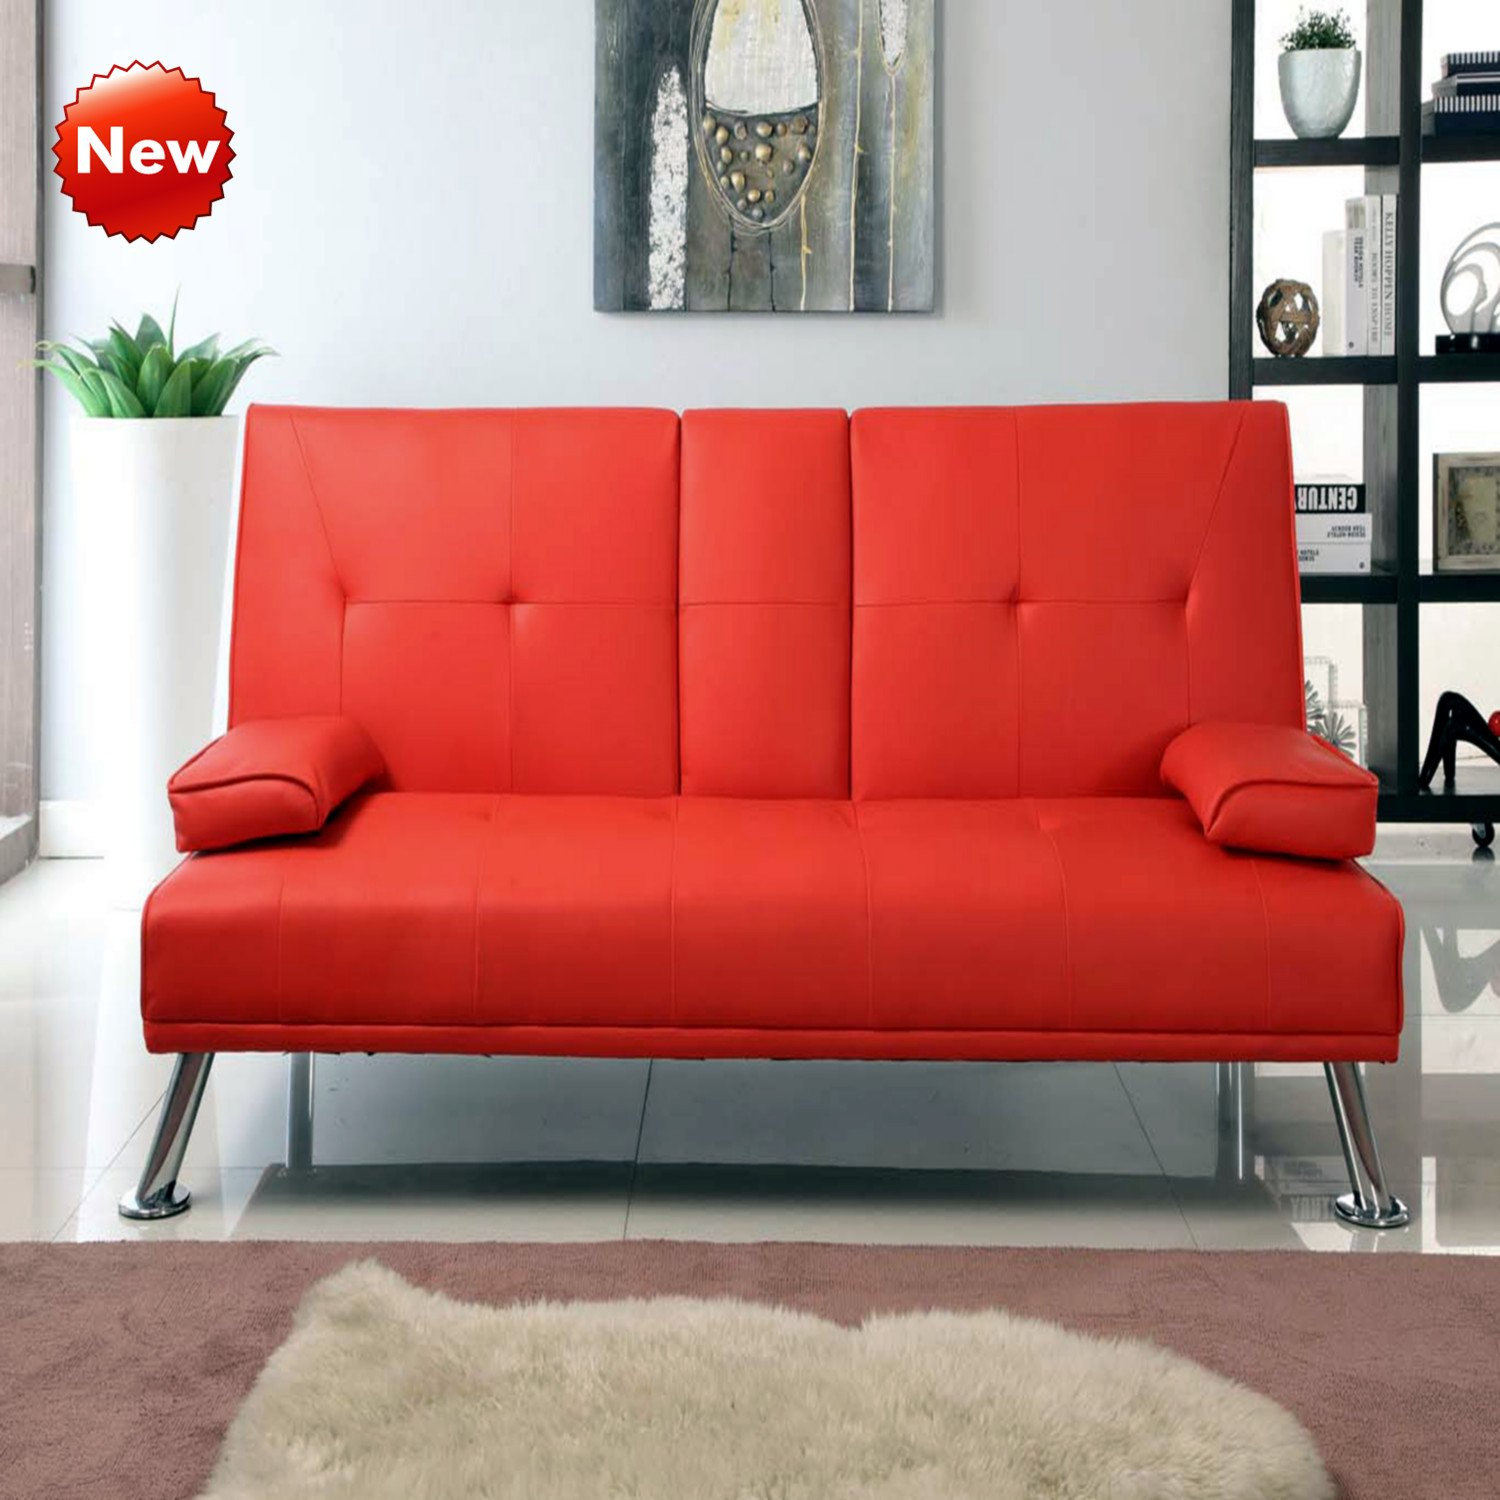 review metal sleeping black arm comfortable dark futons with futon top most leather for mattress dhp red